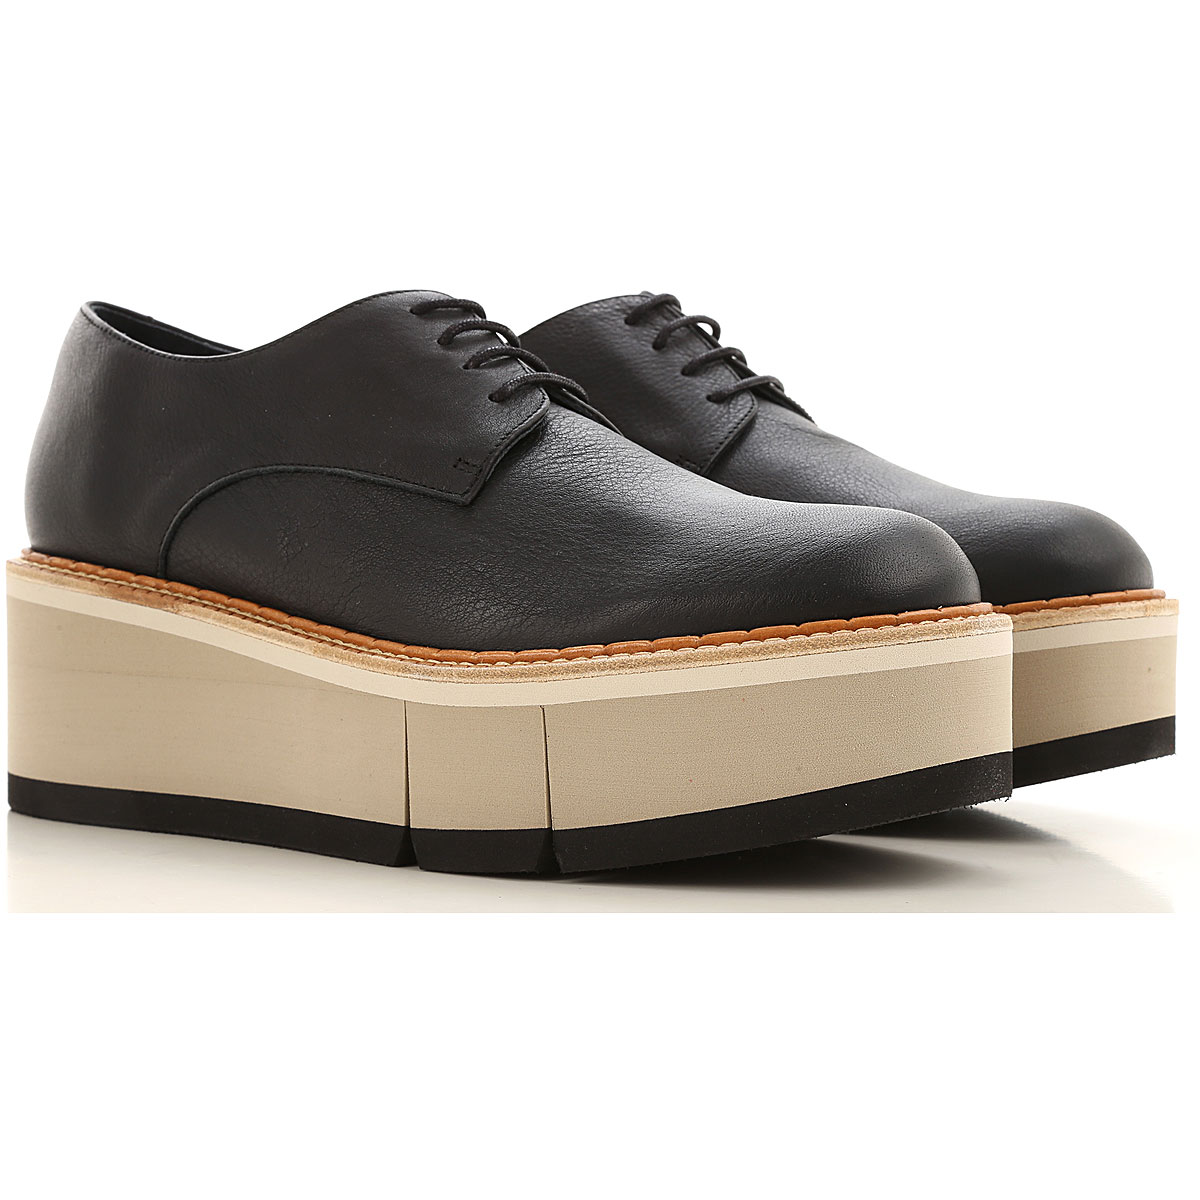 Paloma Barcelo Lace Up Shoes for Men Oxfords, Derbies and Brogues On Sale, Black, Leather, 2019, 10 7 8 9